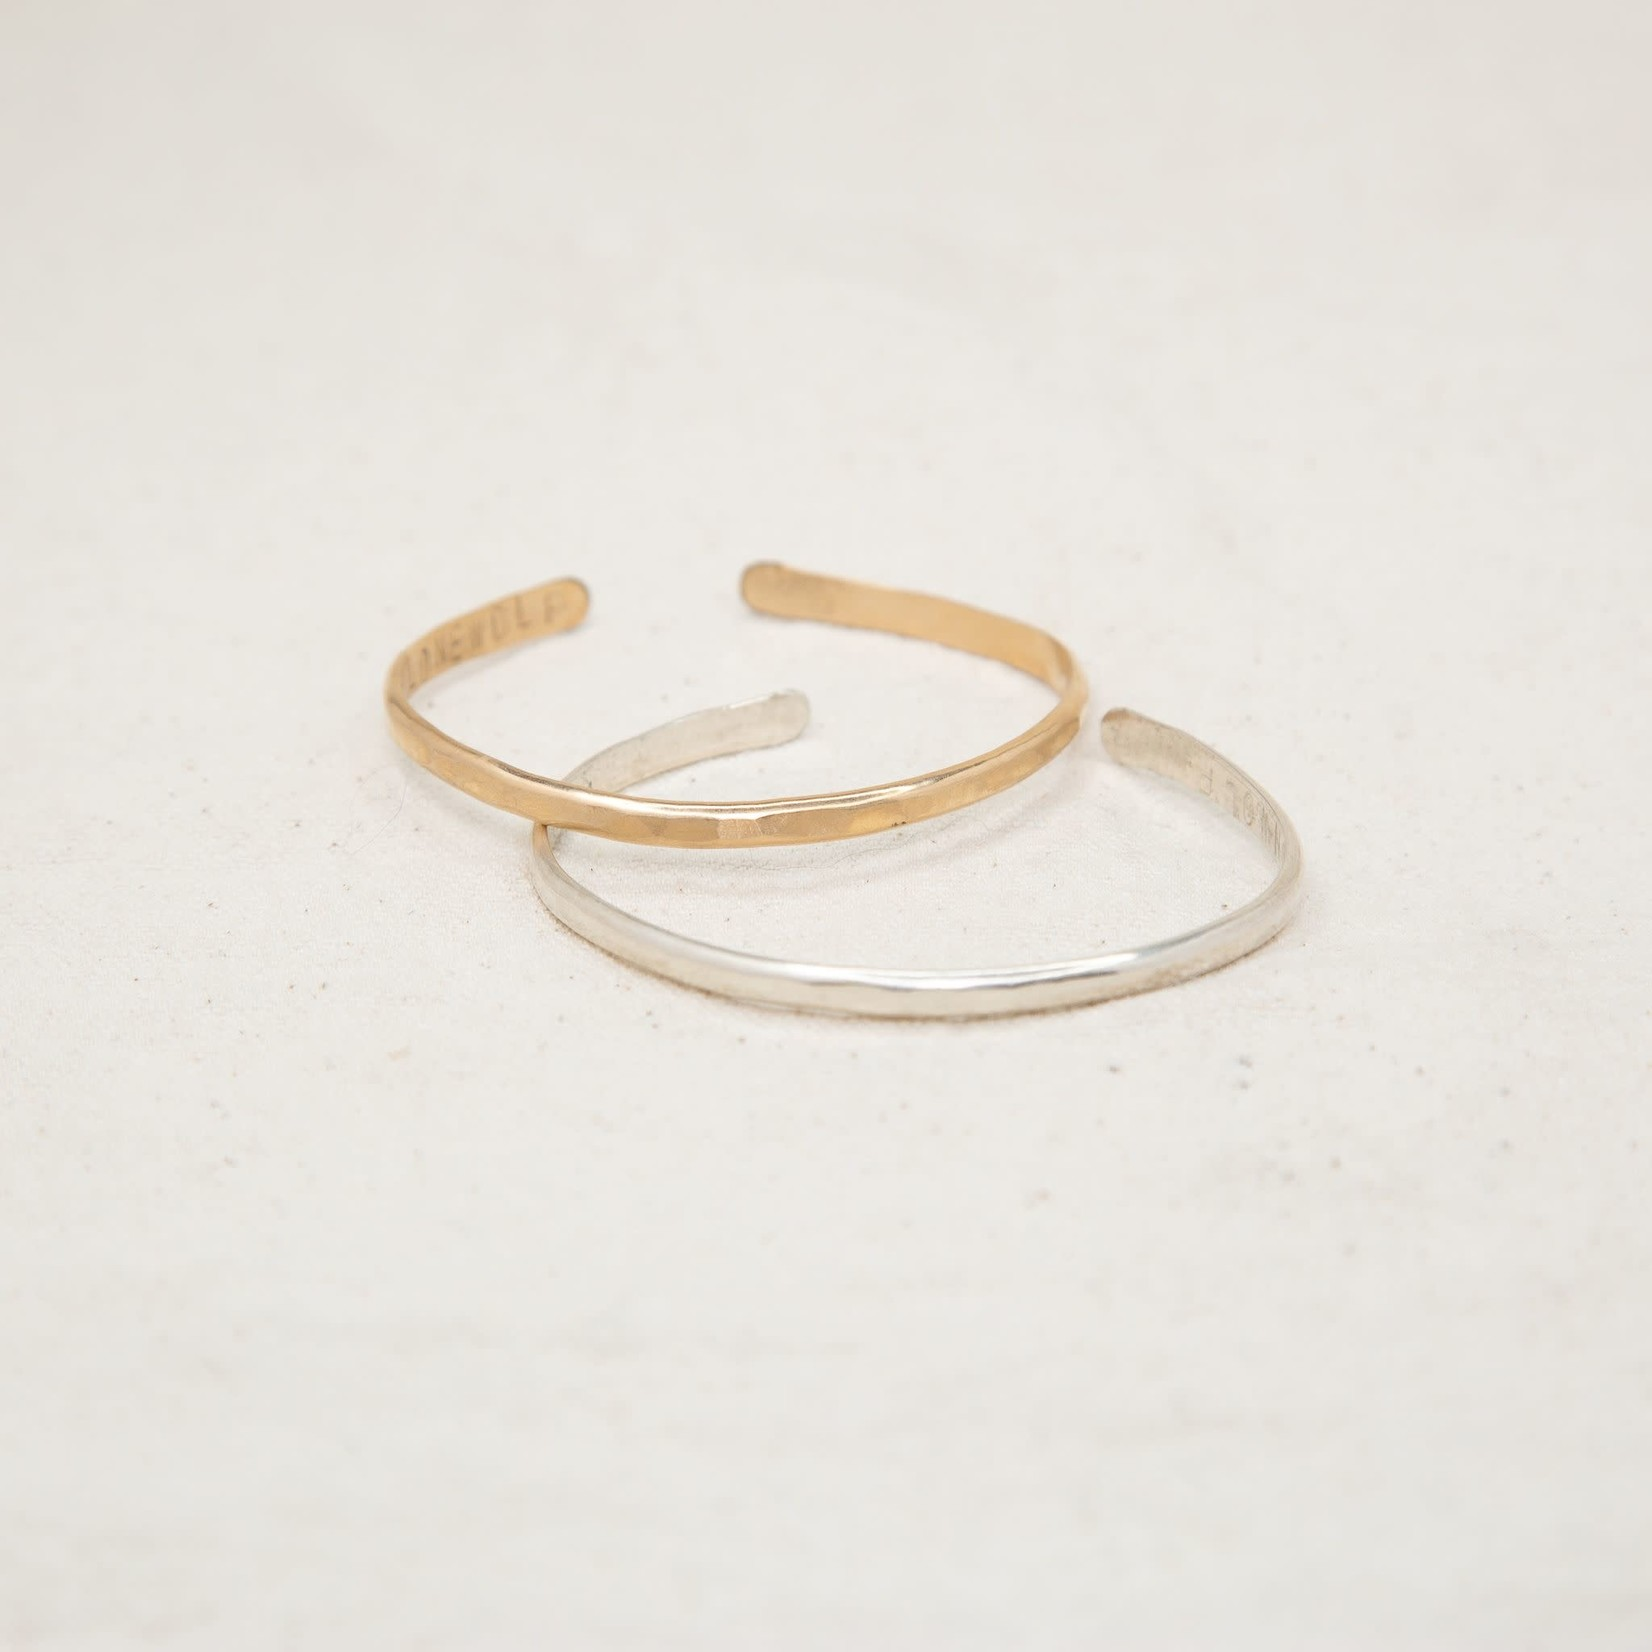 Lonewolf Collective Lonewolf Collective Single Cuff Bracelet (14k Gold Fill)